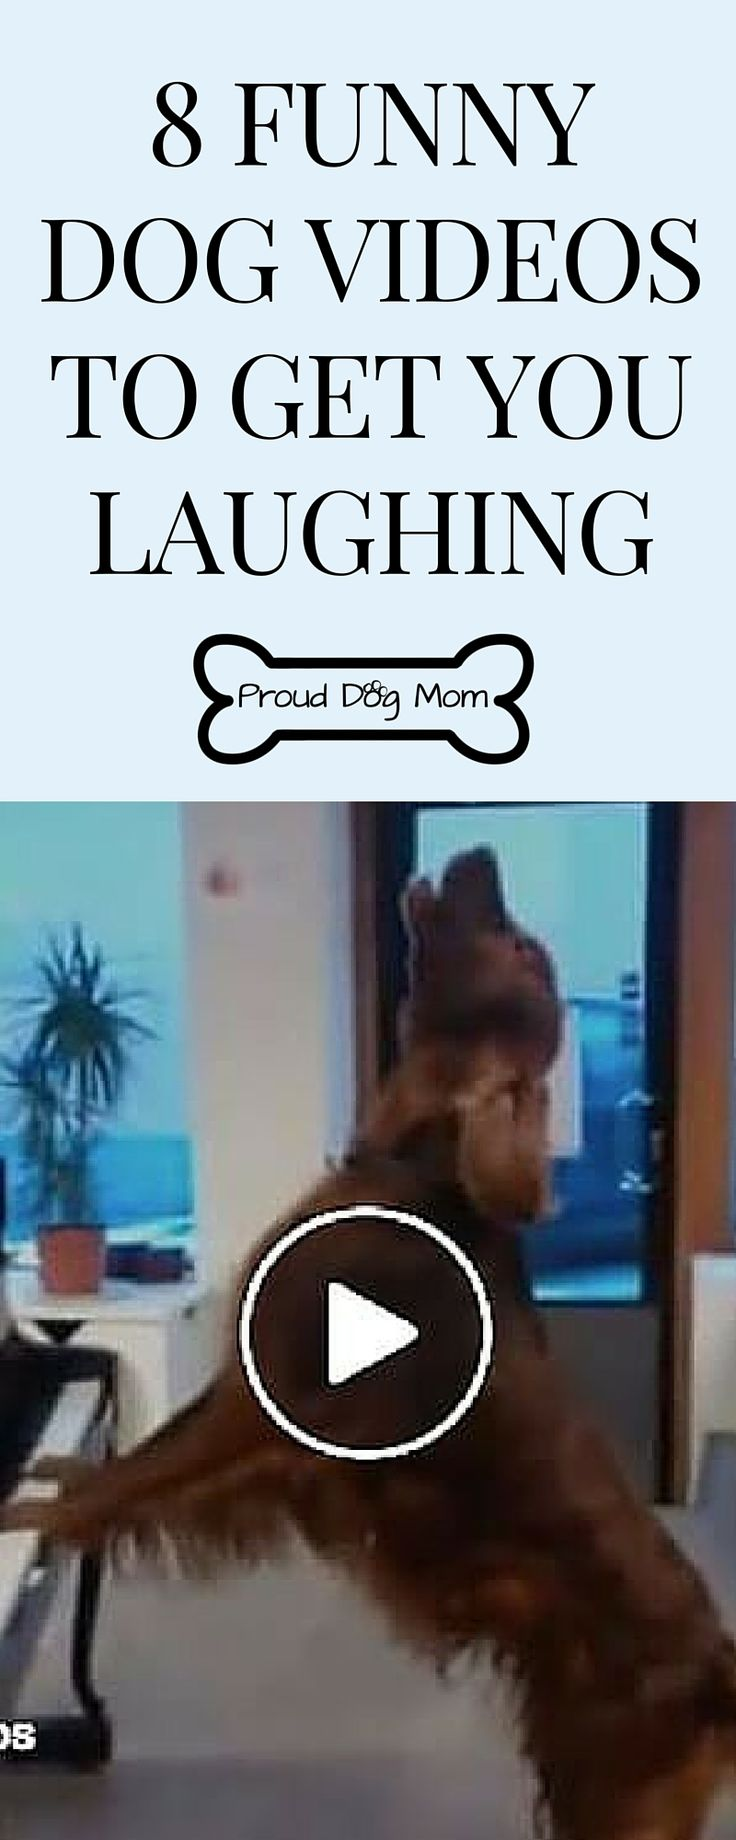 Watch These 8 Funny Dog Videos For a Good Laugh | Cute Dogs |